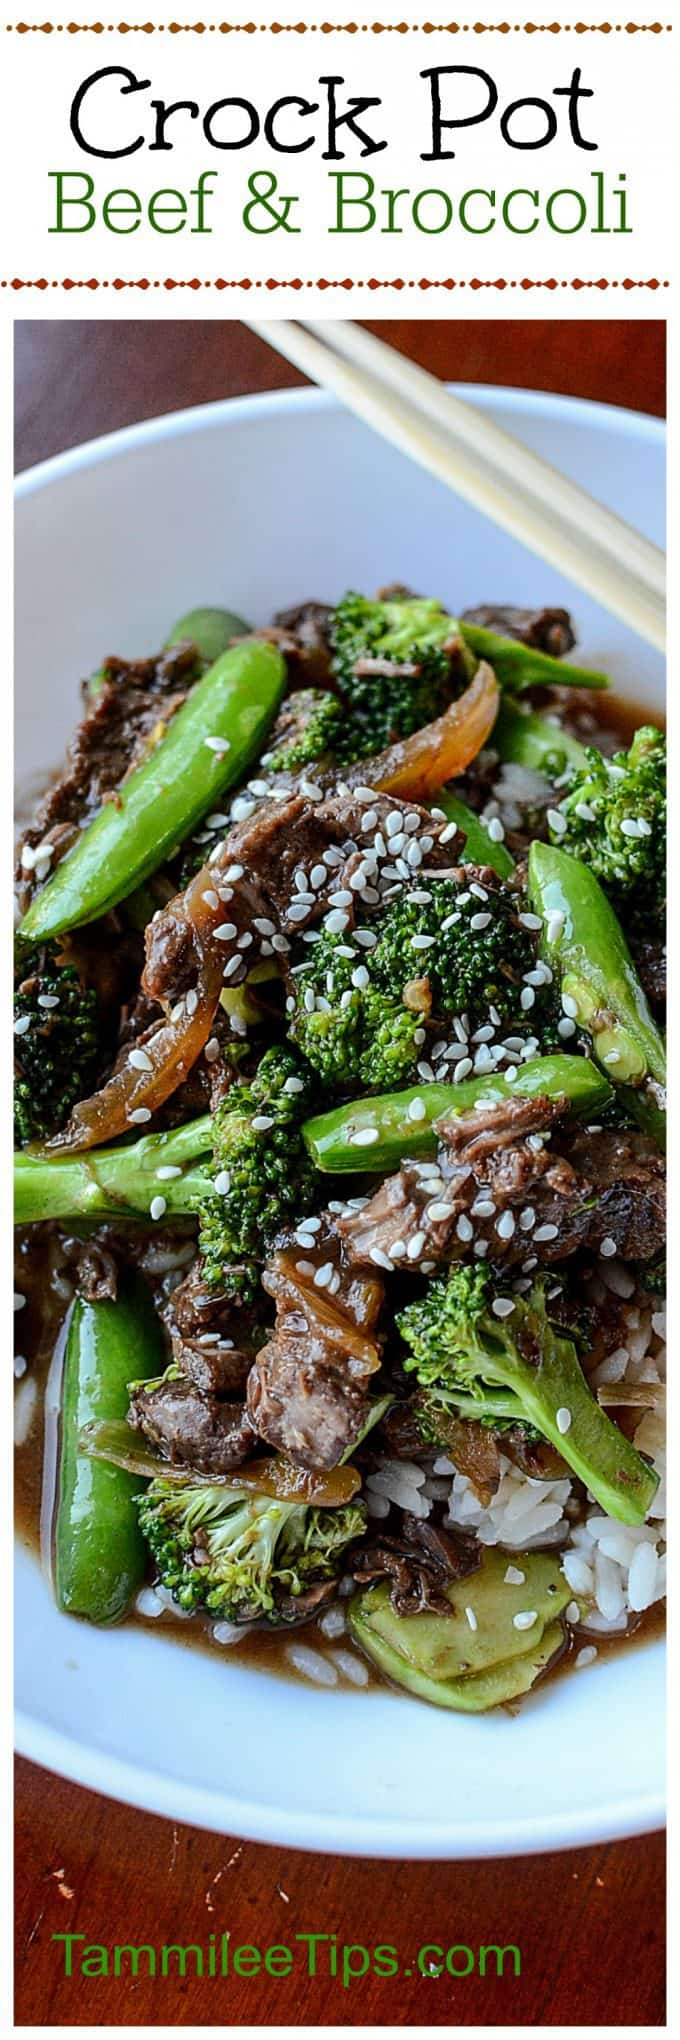 Easy Crock Pot Beef and Broccoli Recipe with Snow Peas! This slow cooker Asian-inspired recipe is easy to make and tastes delicious! Easy Slow Cooker Crock Pot Beef & Broccoli Recipe! One of the best crockpot freezer meals you can make! #crockpot #slowcooker #recipe #beef